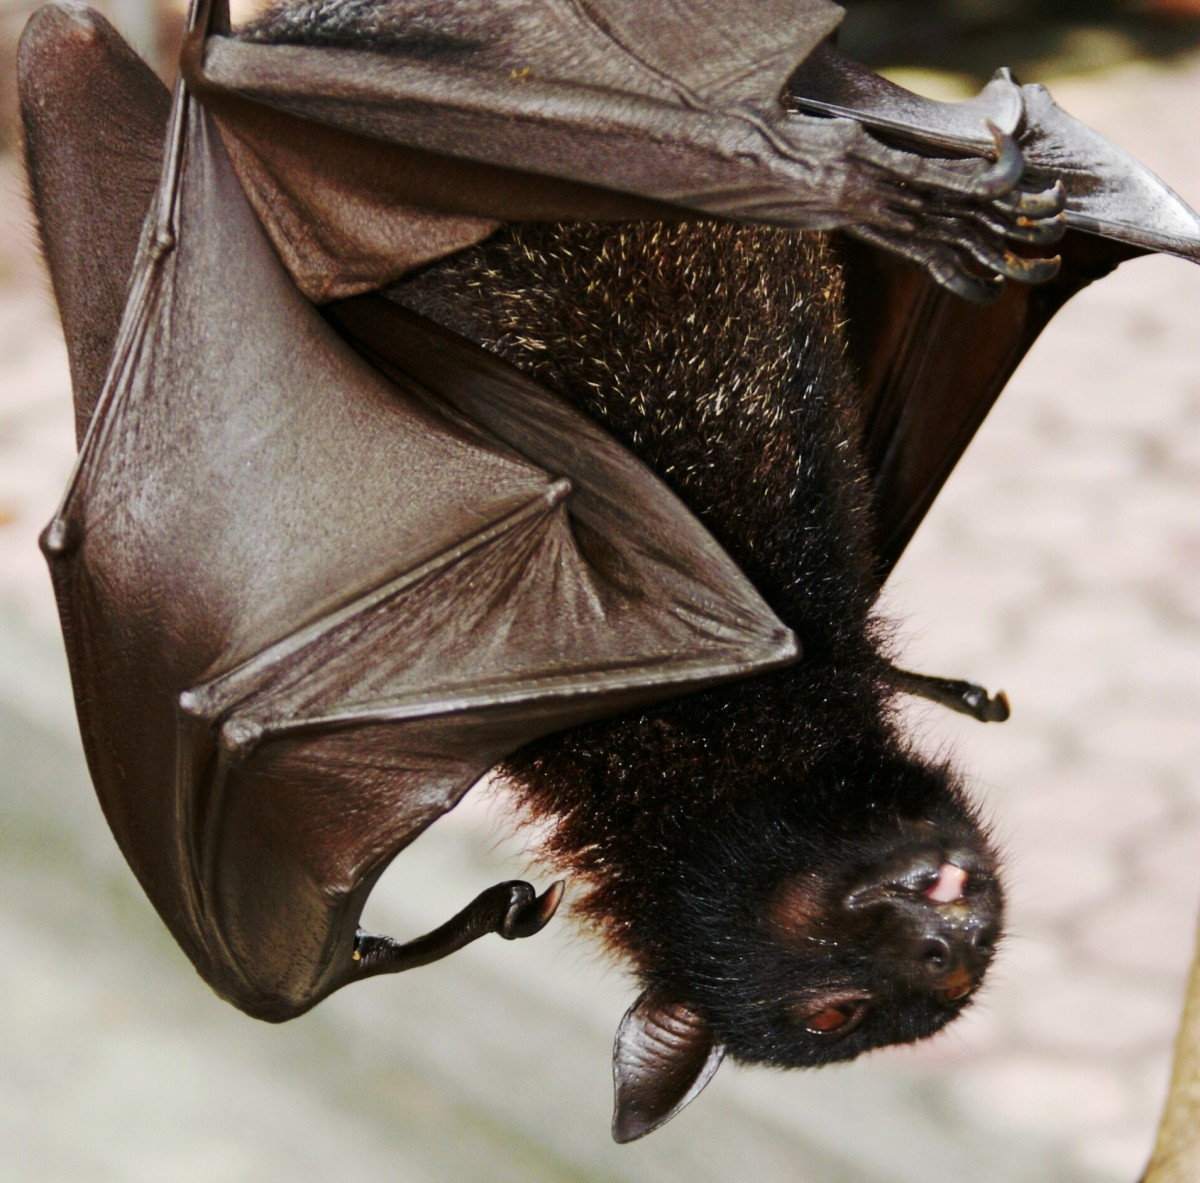 Although this bat is hanging out alone, typically bats cluster in groups.